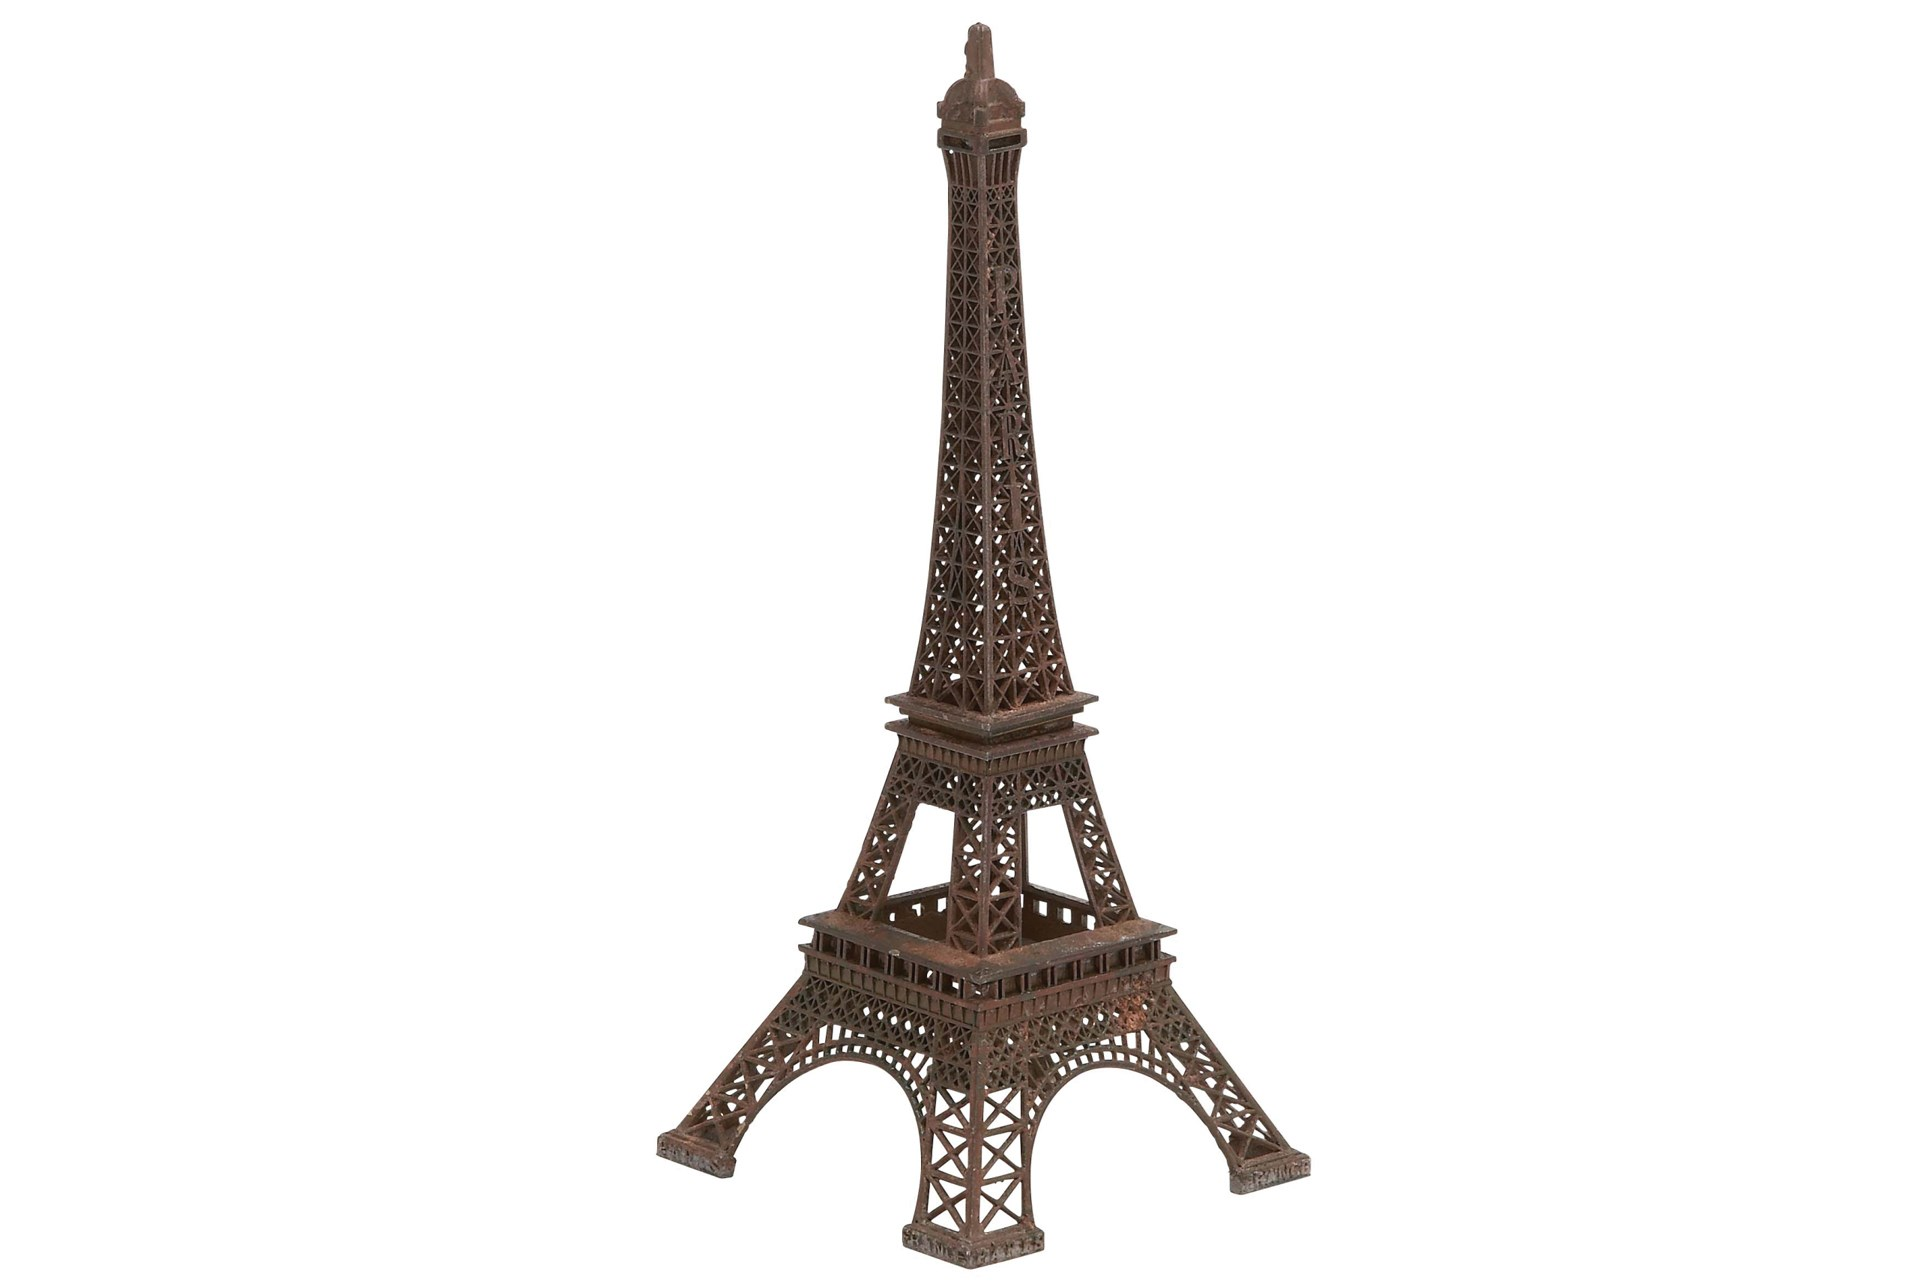 12 inch eiffel tower decor living spaces 12 inch eiffel tower decor 360 clearance view size view size large view reviewsmspy